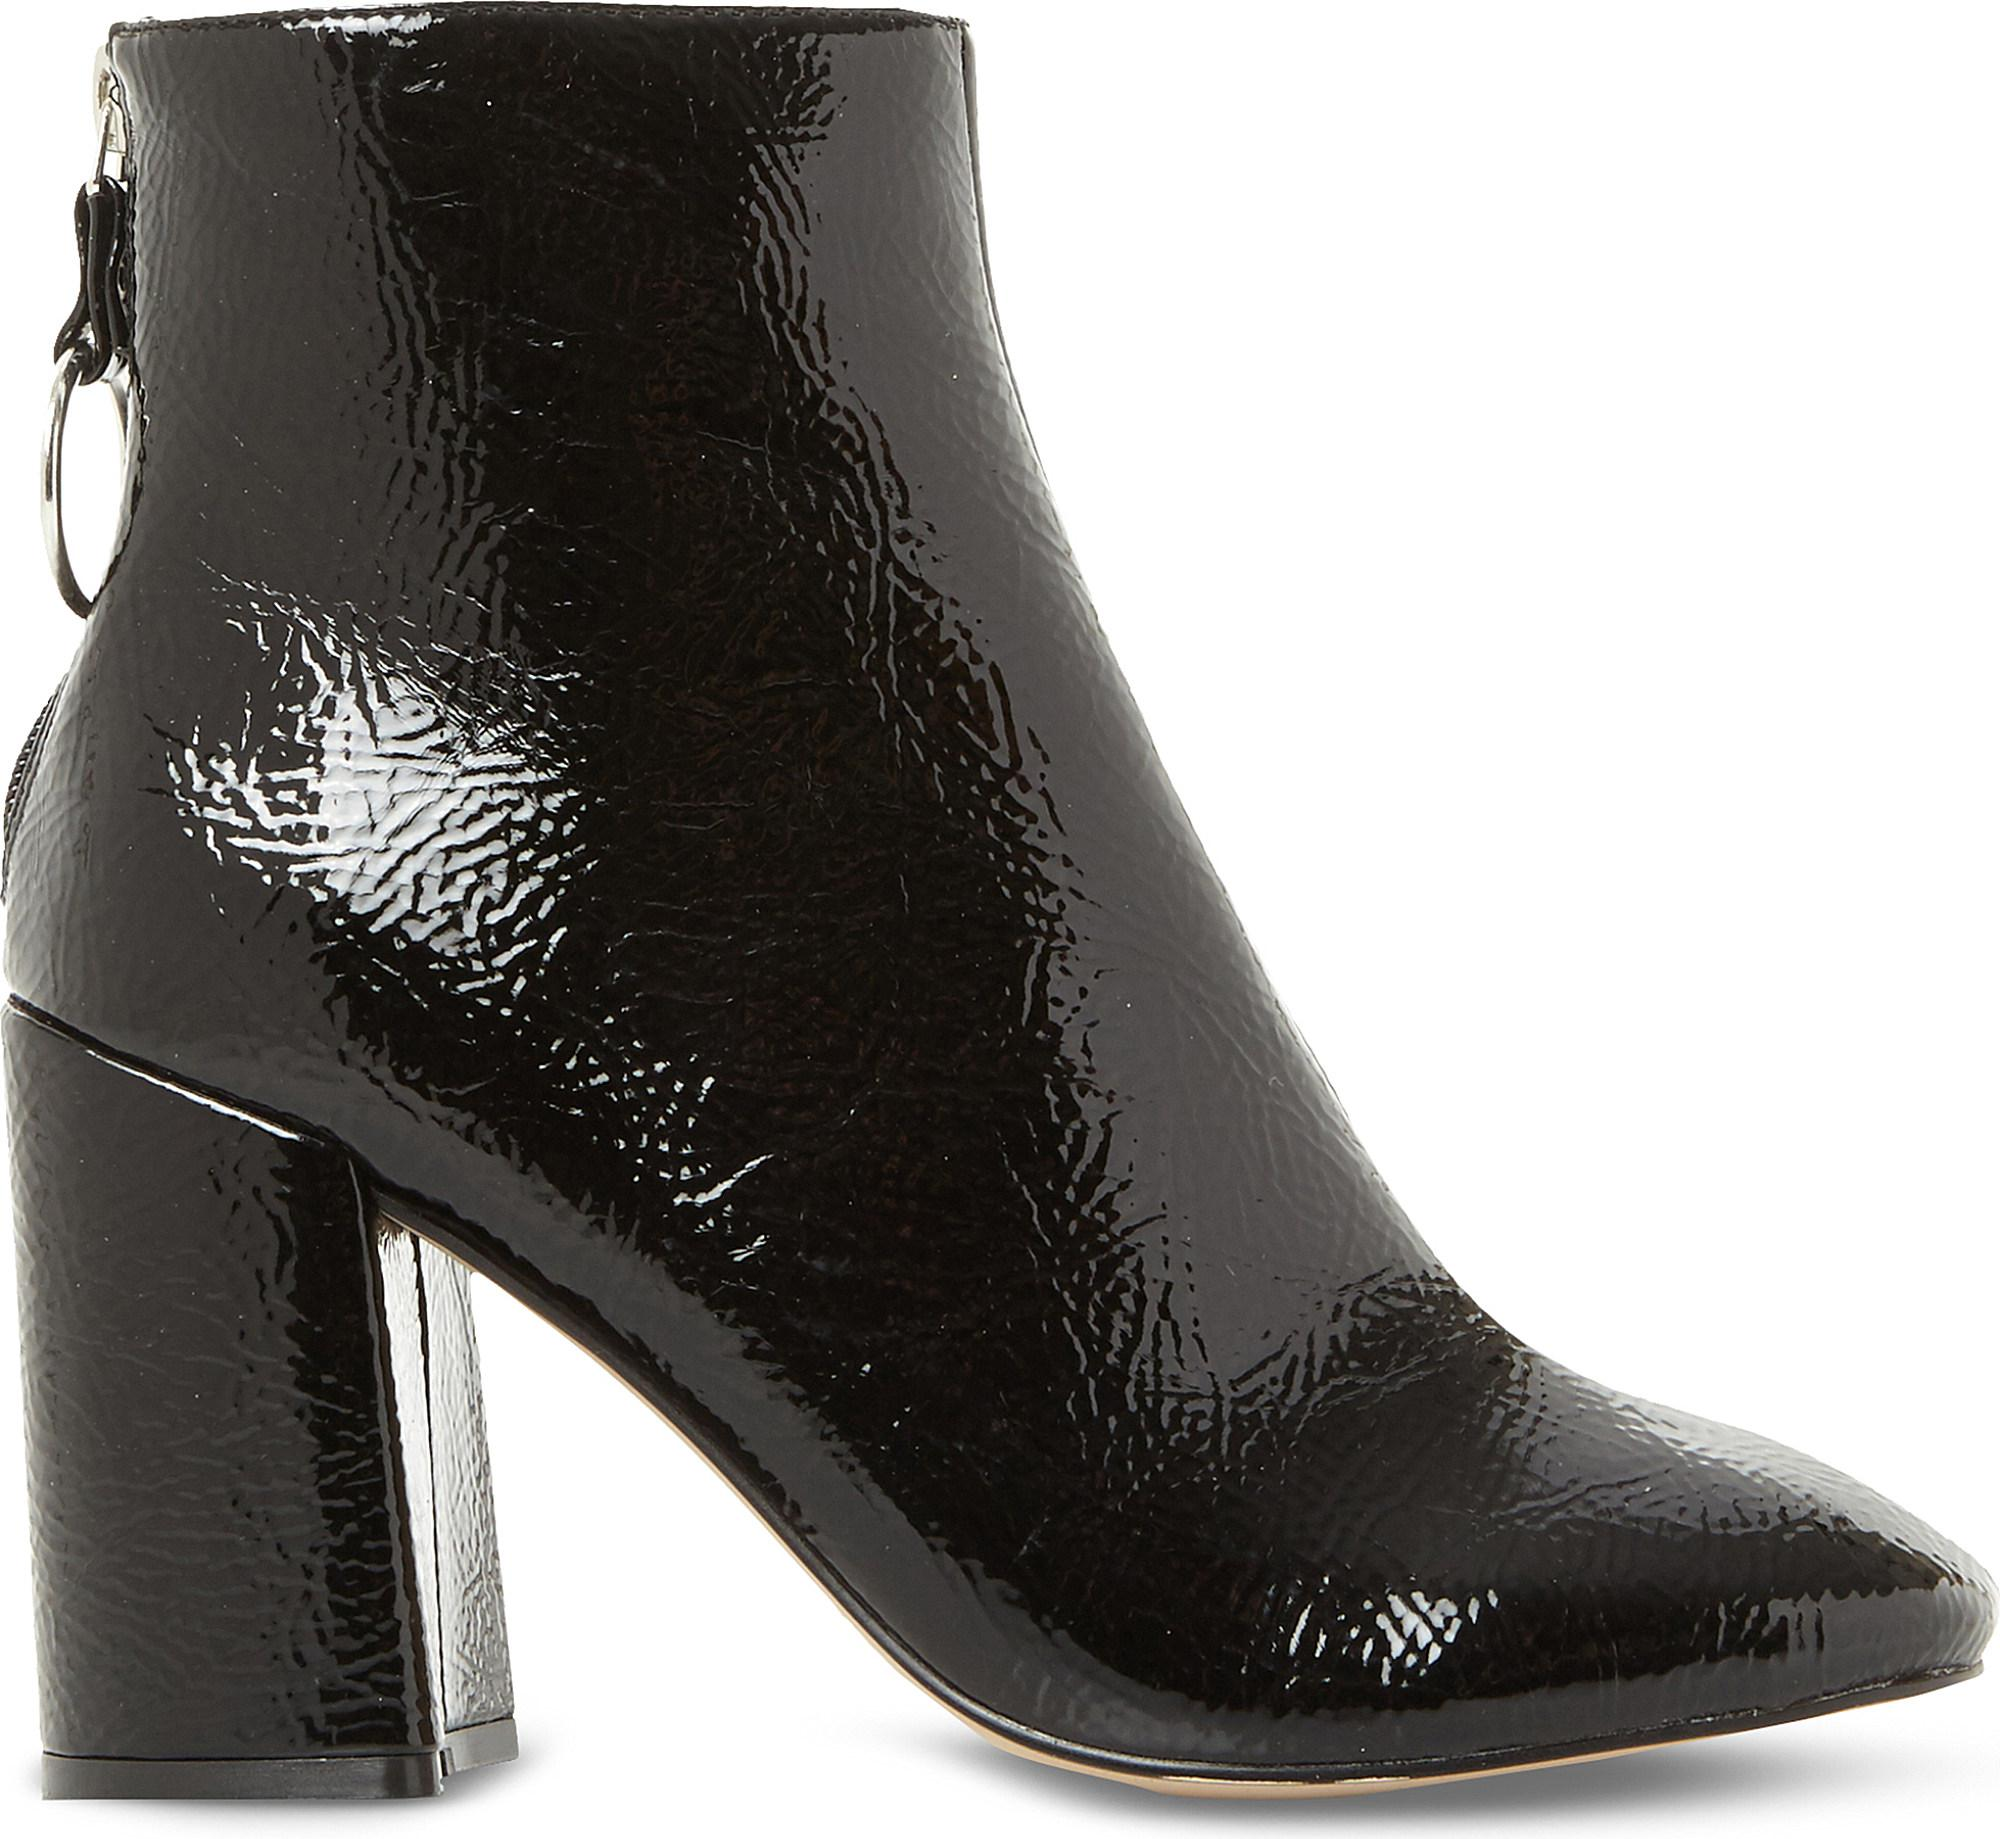 563f9bb59a94 Lyst - Steve Madden Posed Patent-effect Heeled Ankle Boots in Black